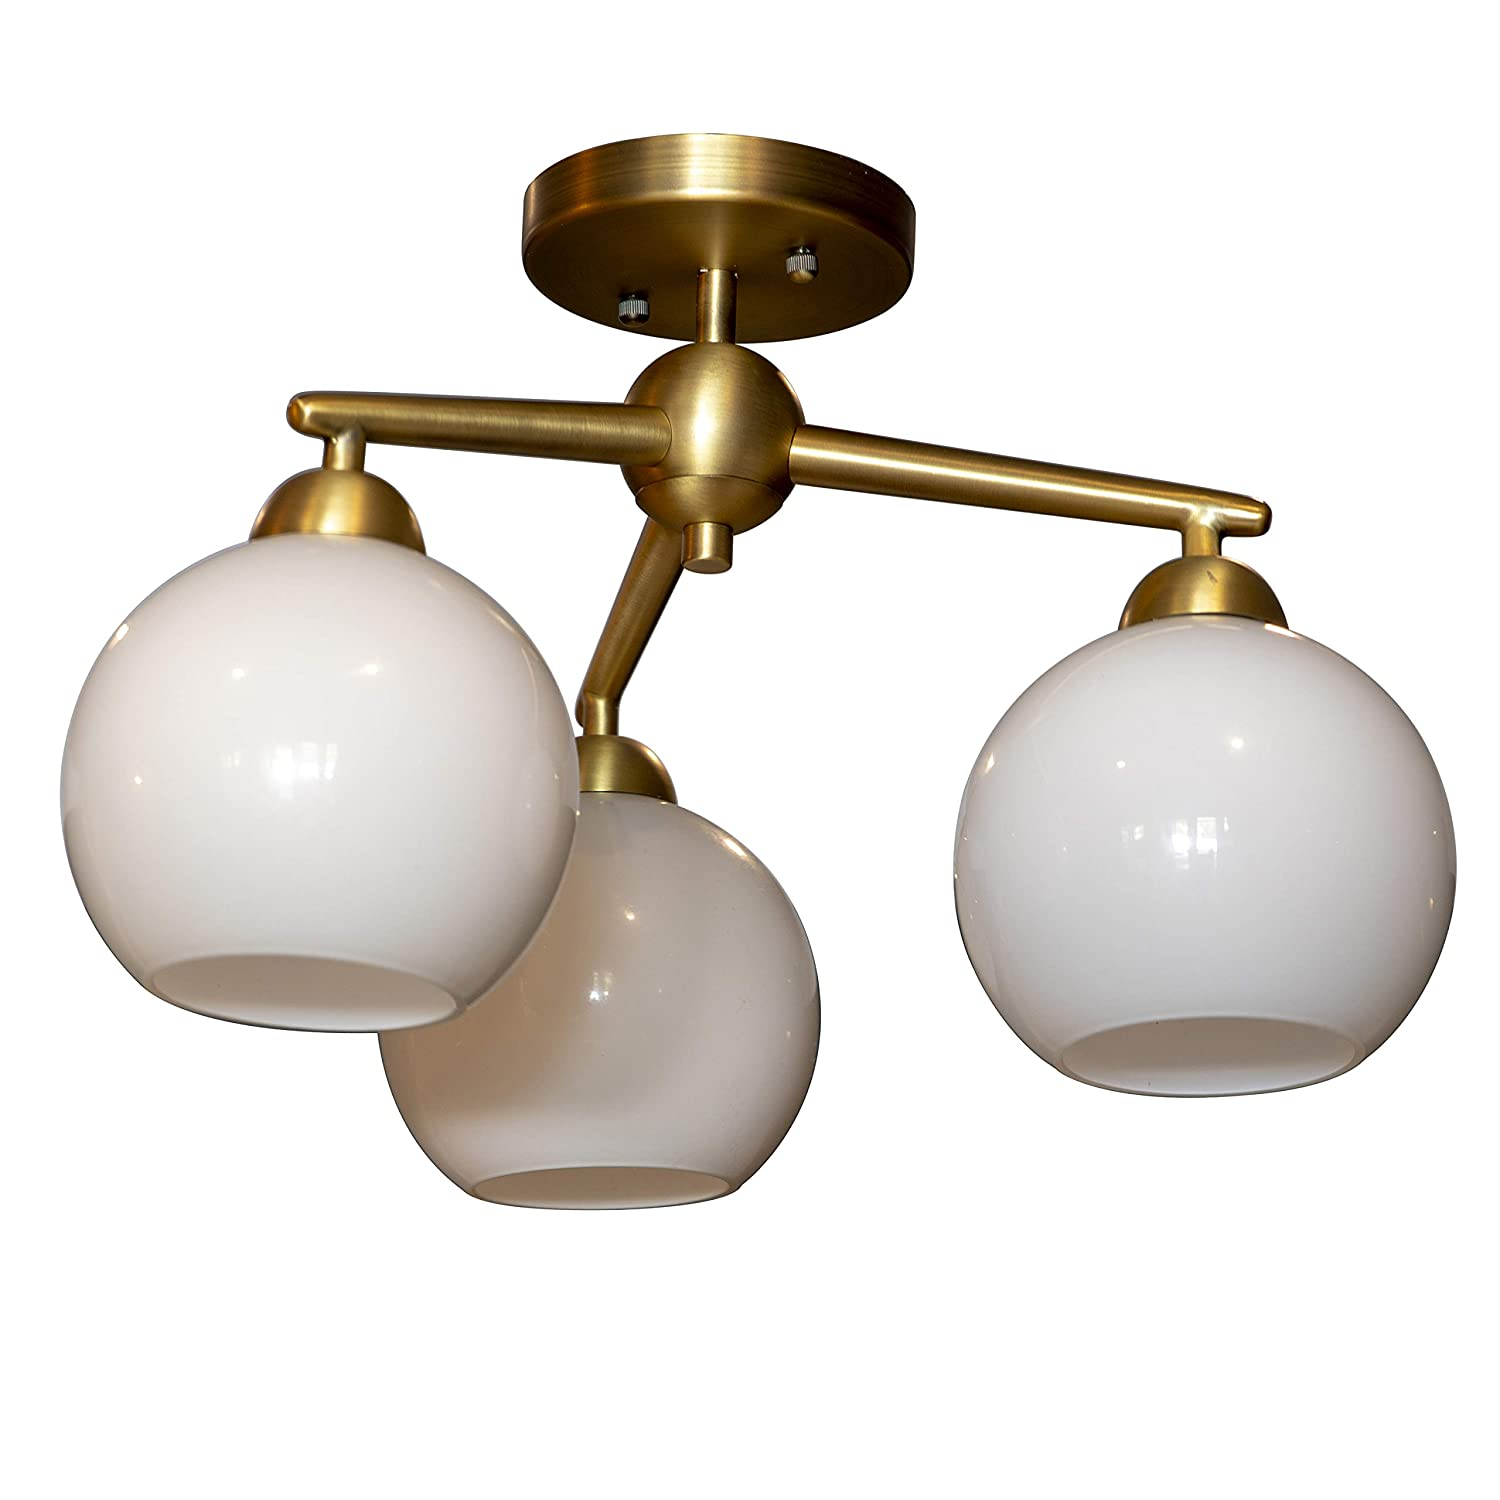 Décor Therapy CH1910 Michael Milk Glass 3 Semi Flush Mount Ceiling Light, Antique Brass